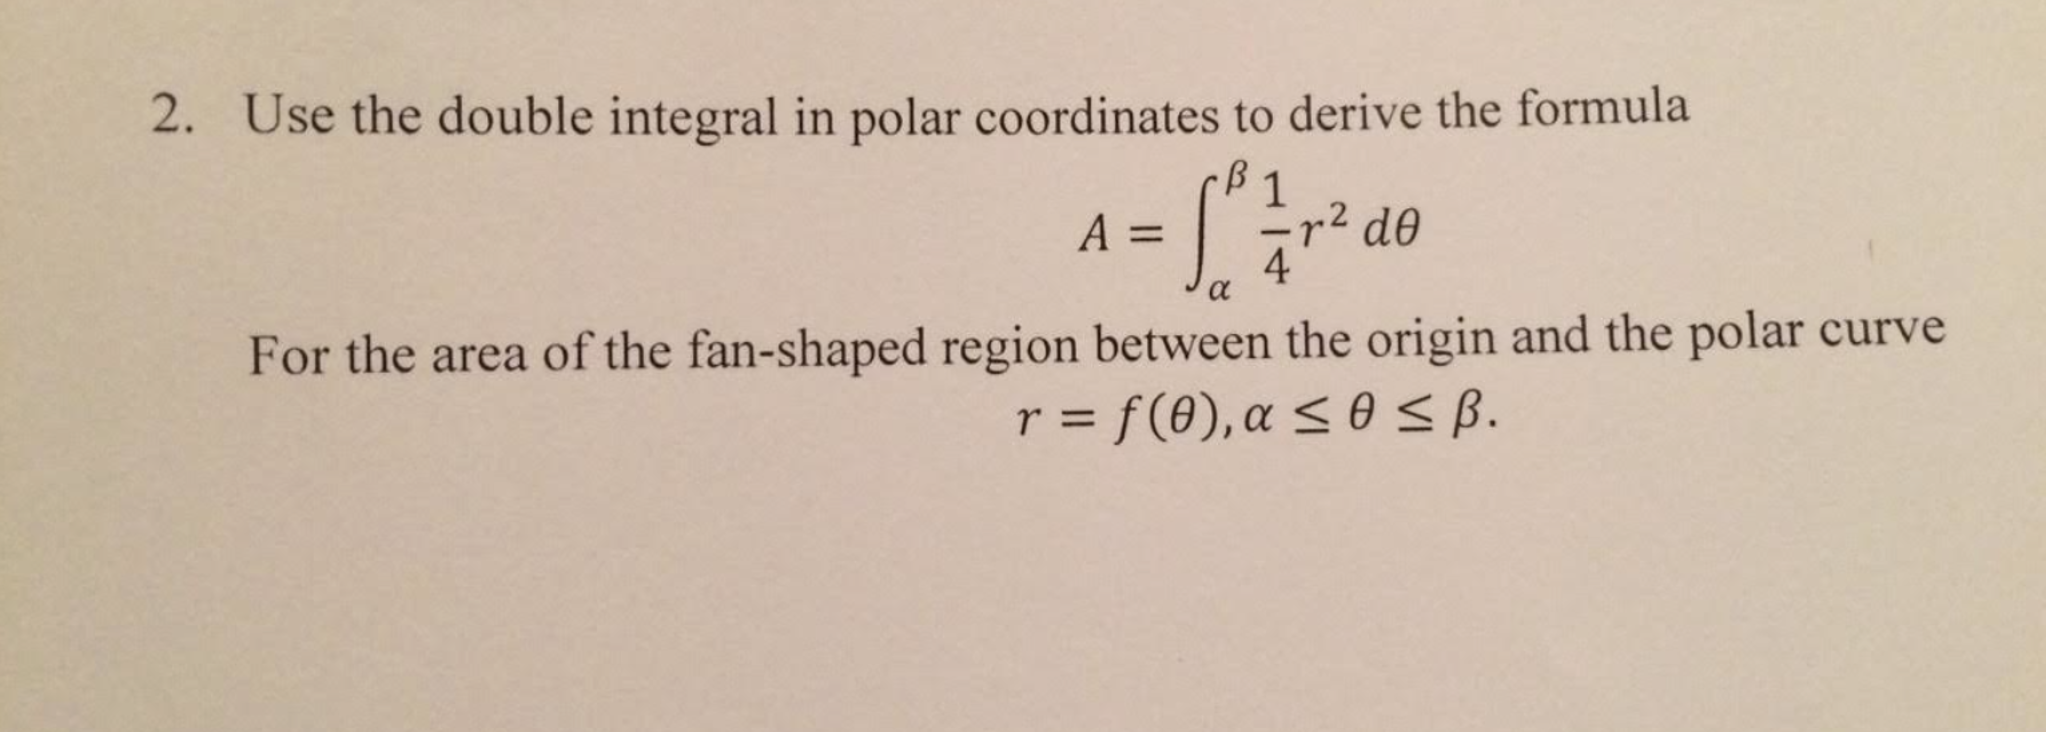 Use The Double Integral In Polar Coordinates To De Area Between Two Curves  Problem #34 Polar Coordinates How To Find